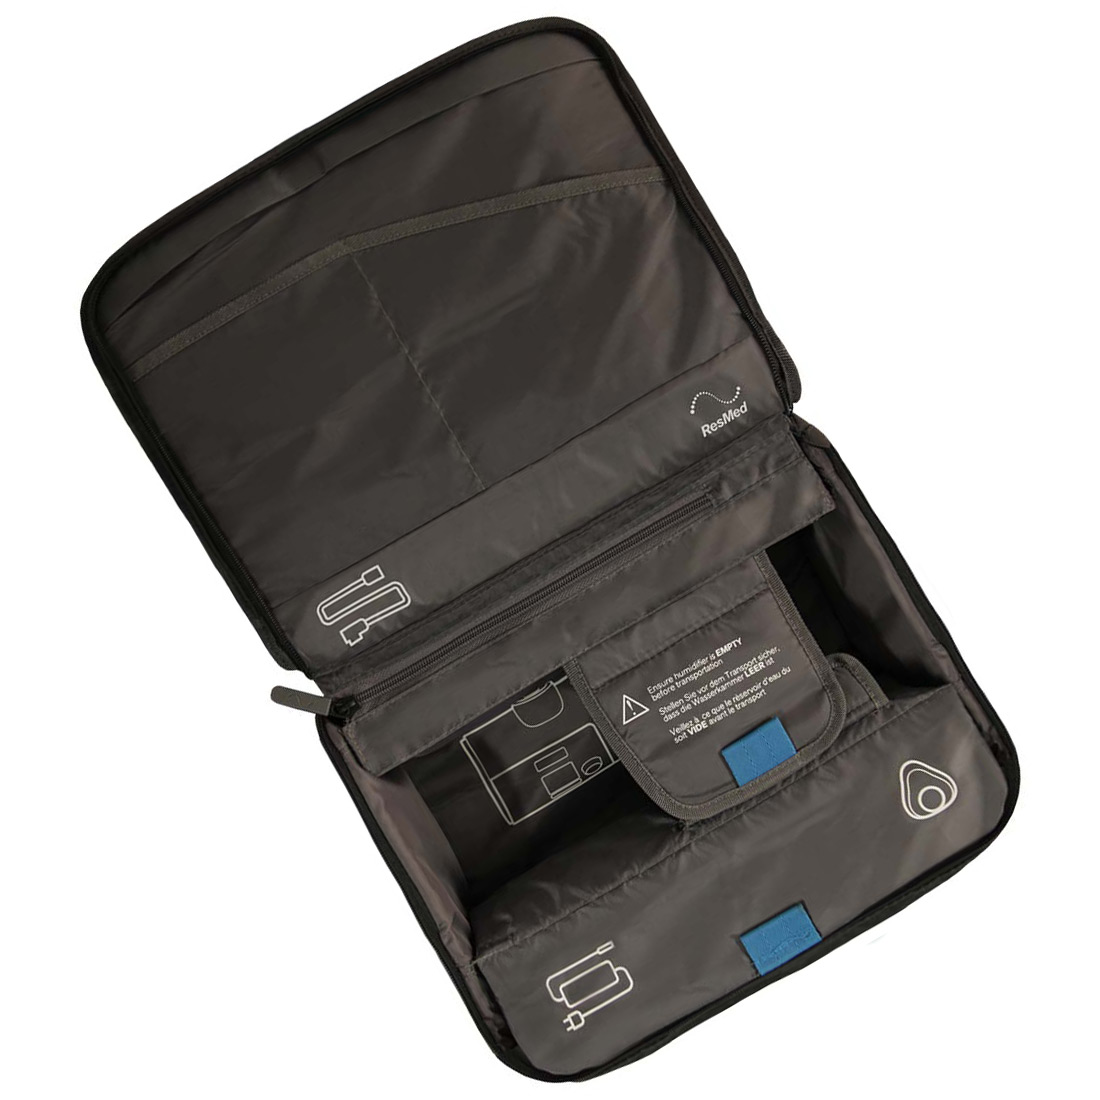 AirSense and AirCurve Travel Bag